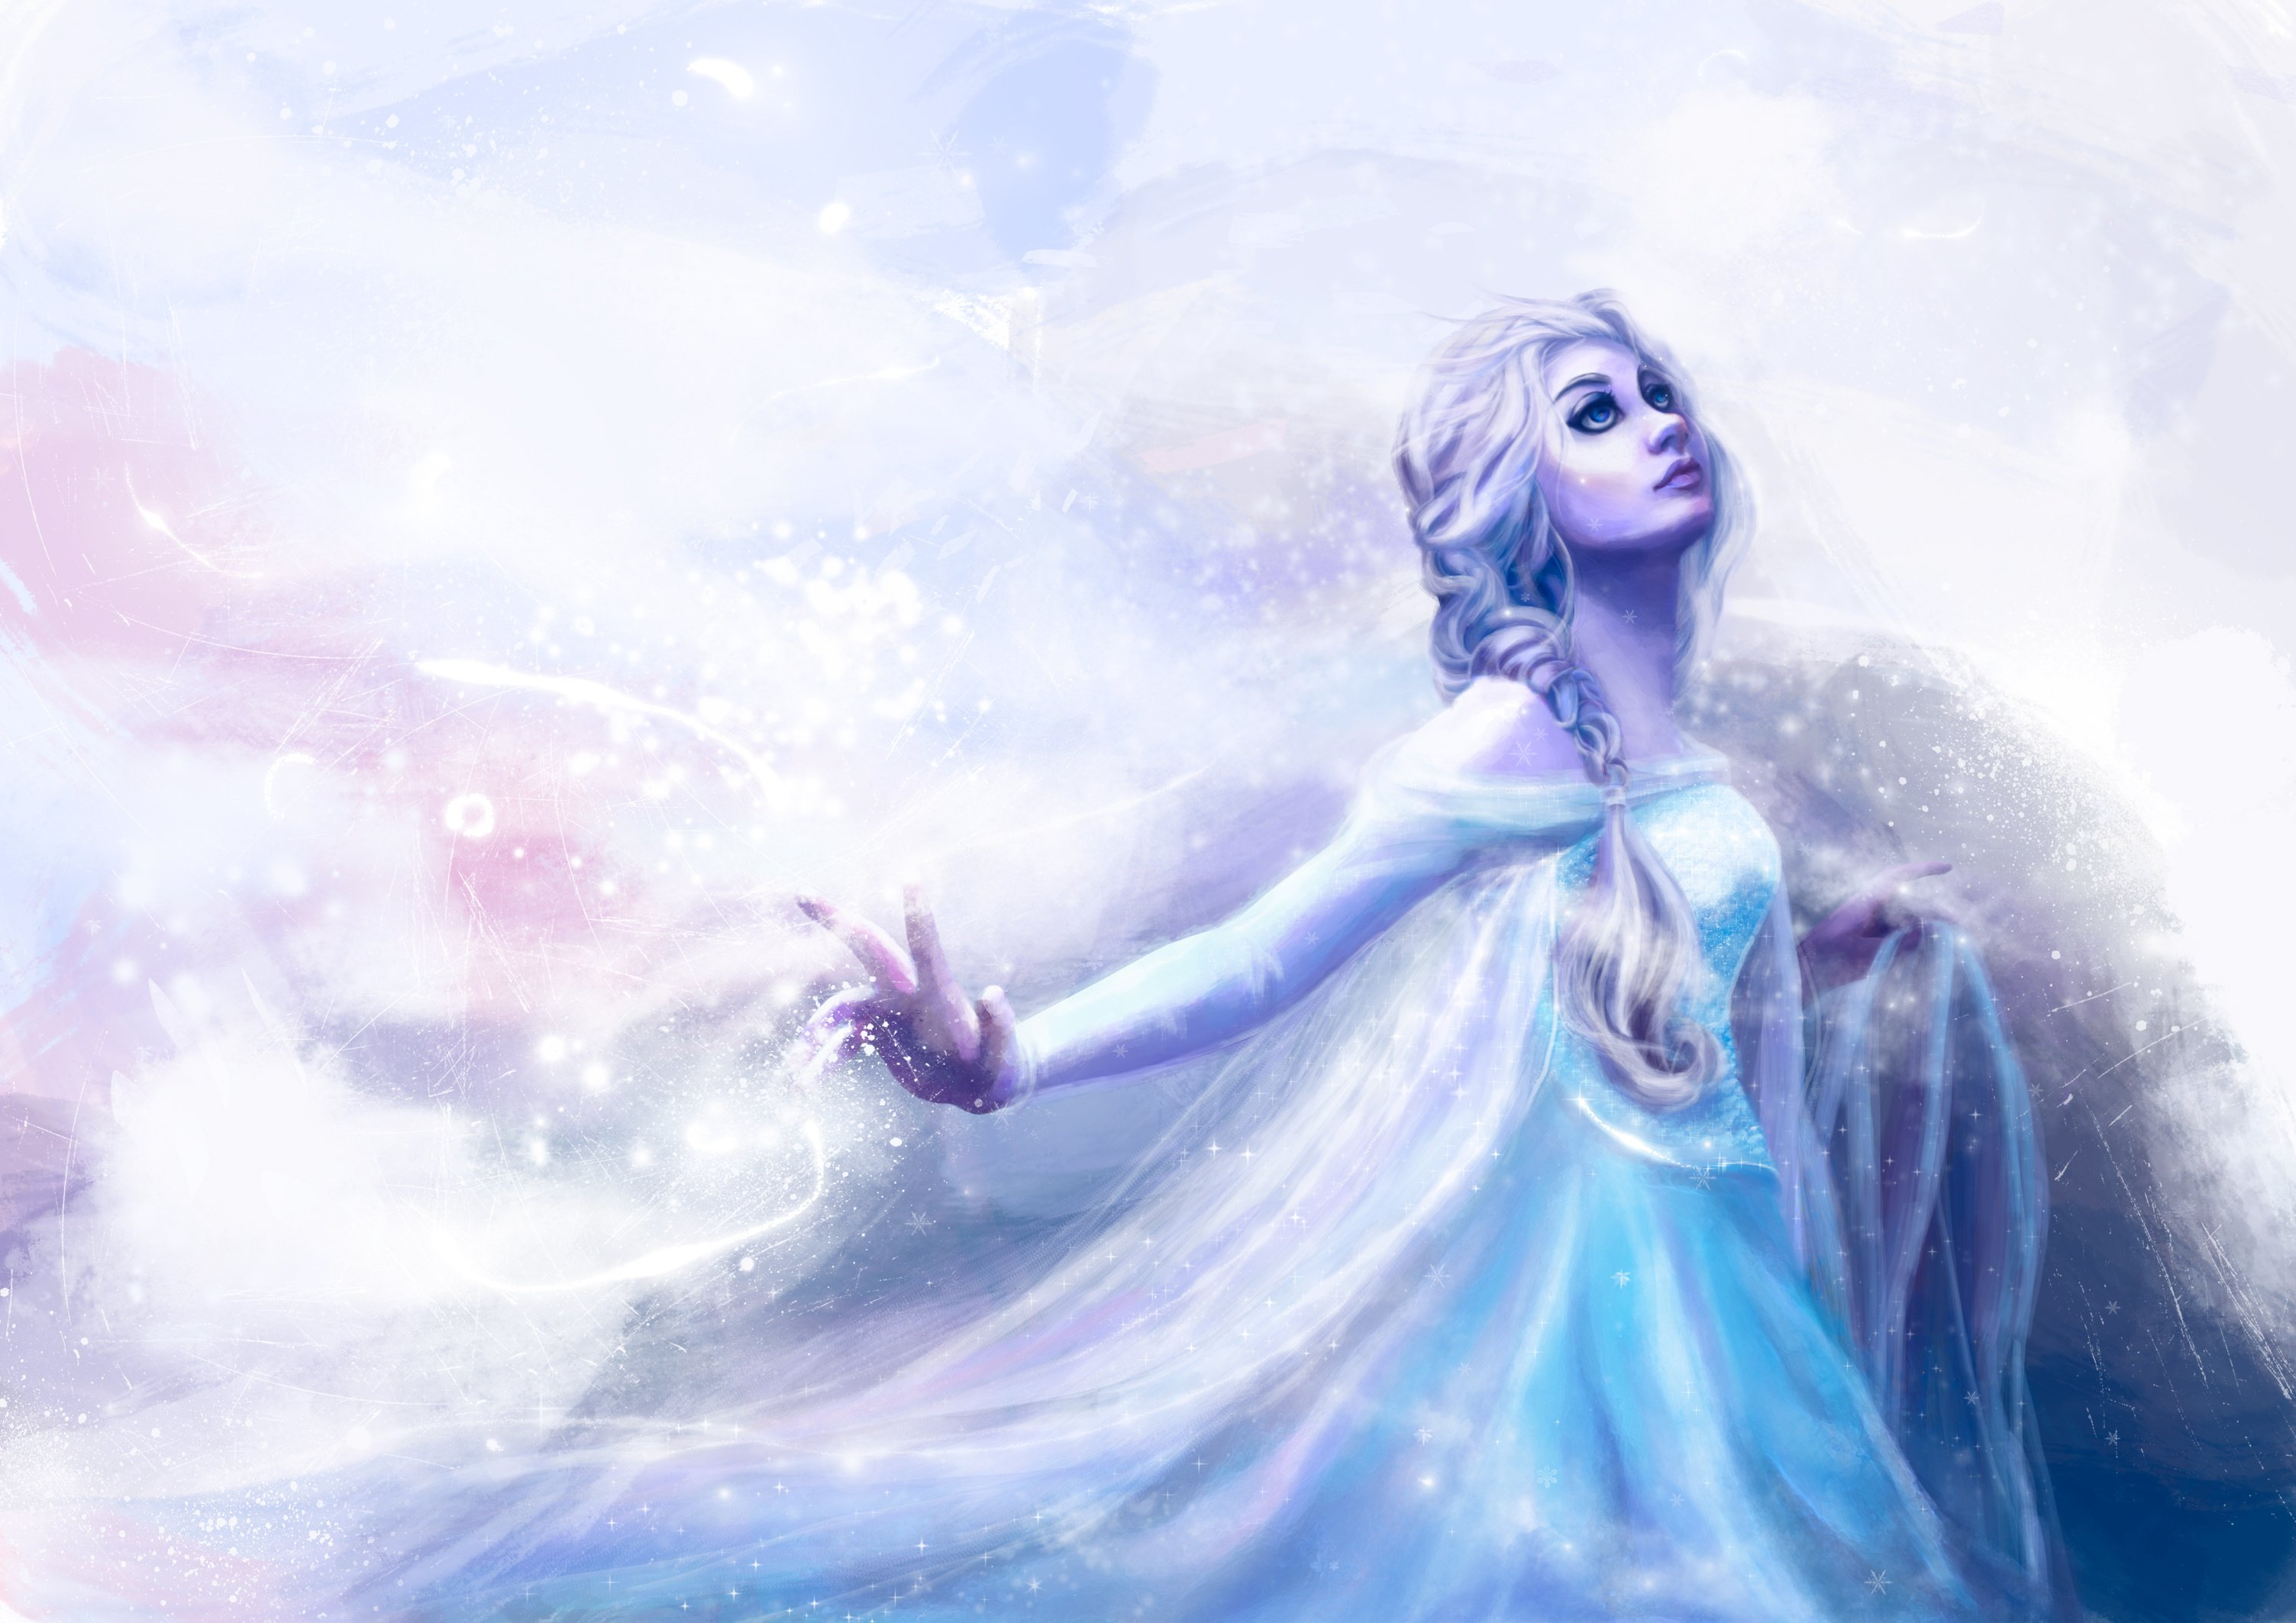 frozen snow queen elsa fantasy girl artwork mood wallpaper background 3007x2126